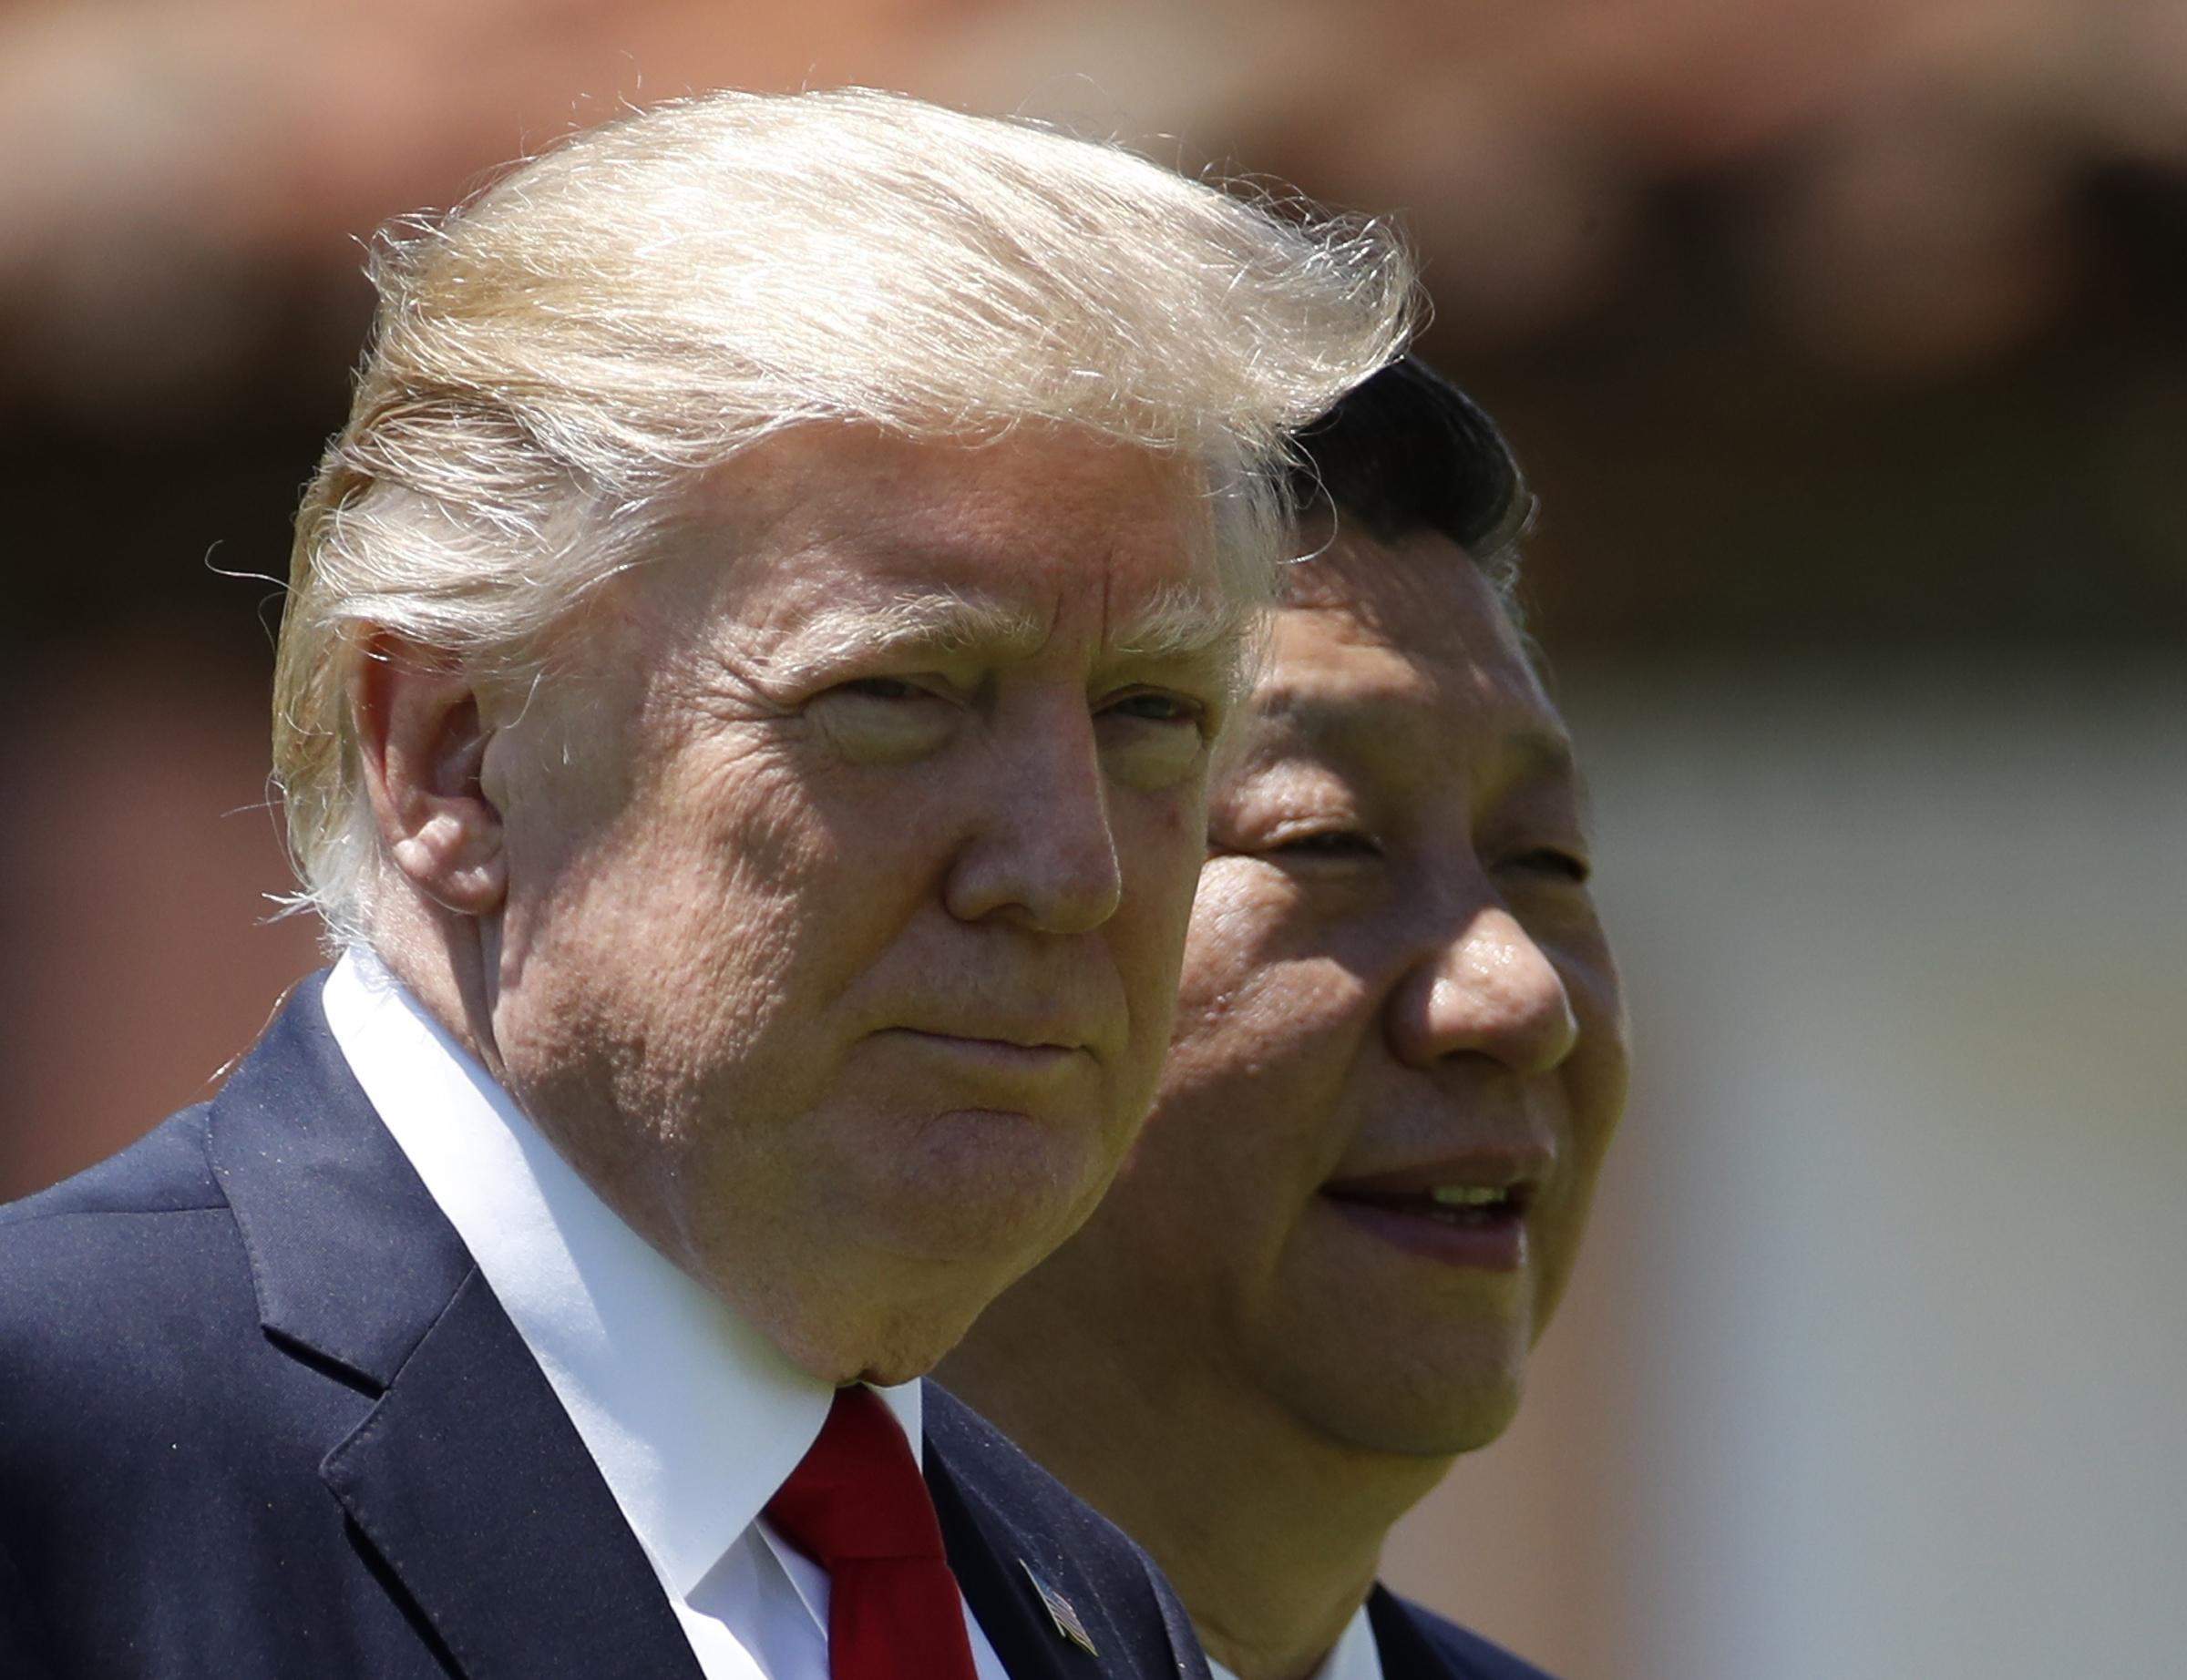 Another promise kept: Trump's toughness on China gives Potomac elites the vapors